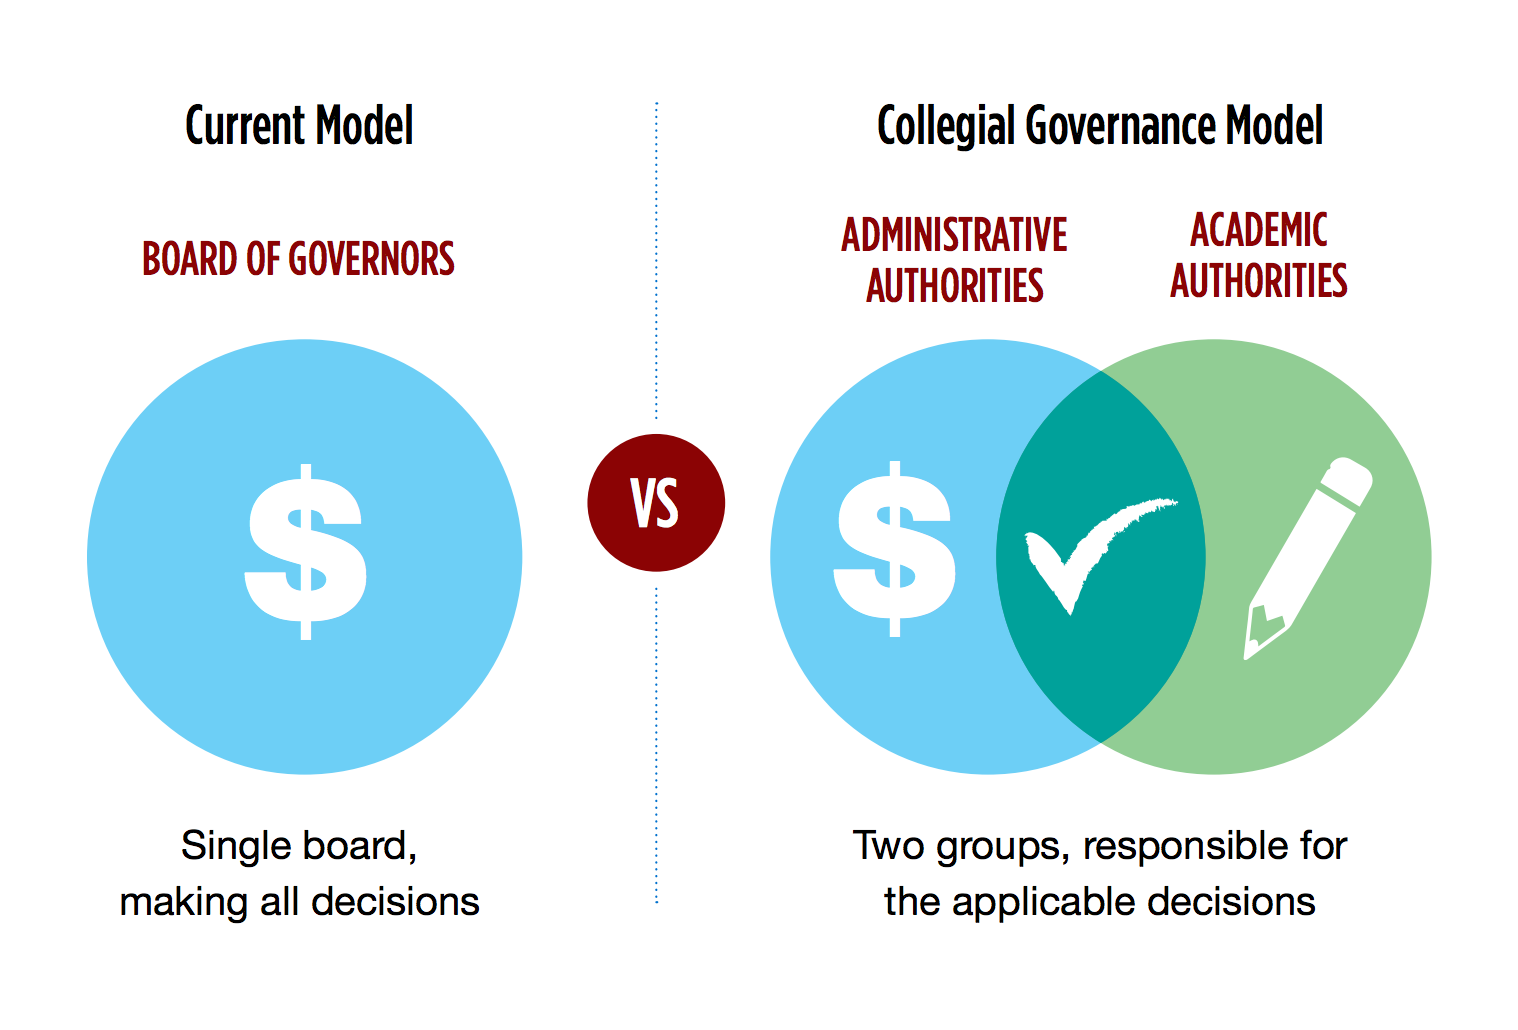 Collegial Governance Model